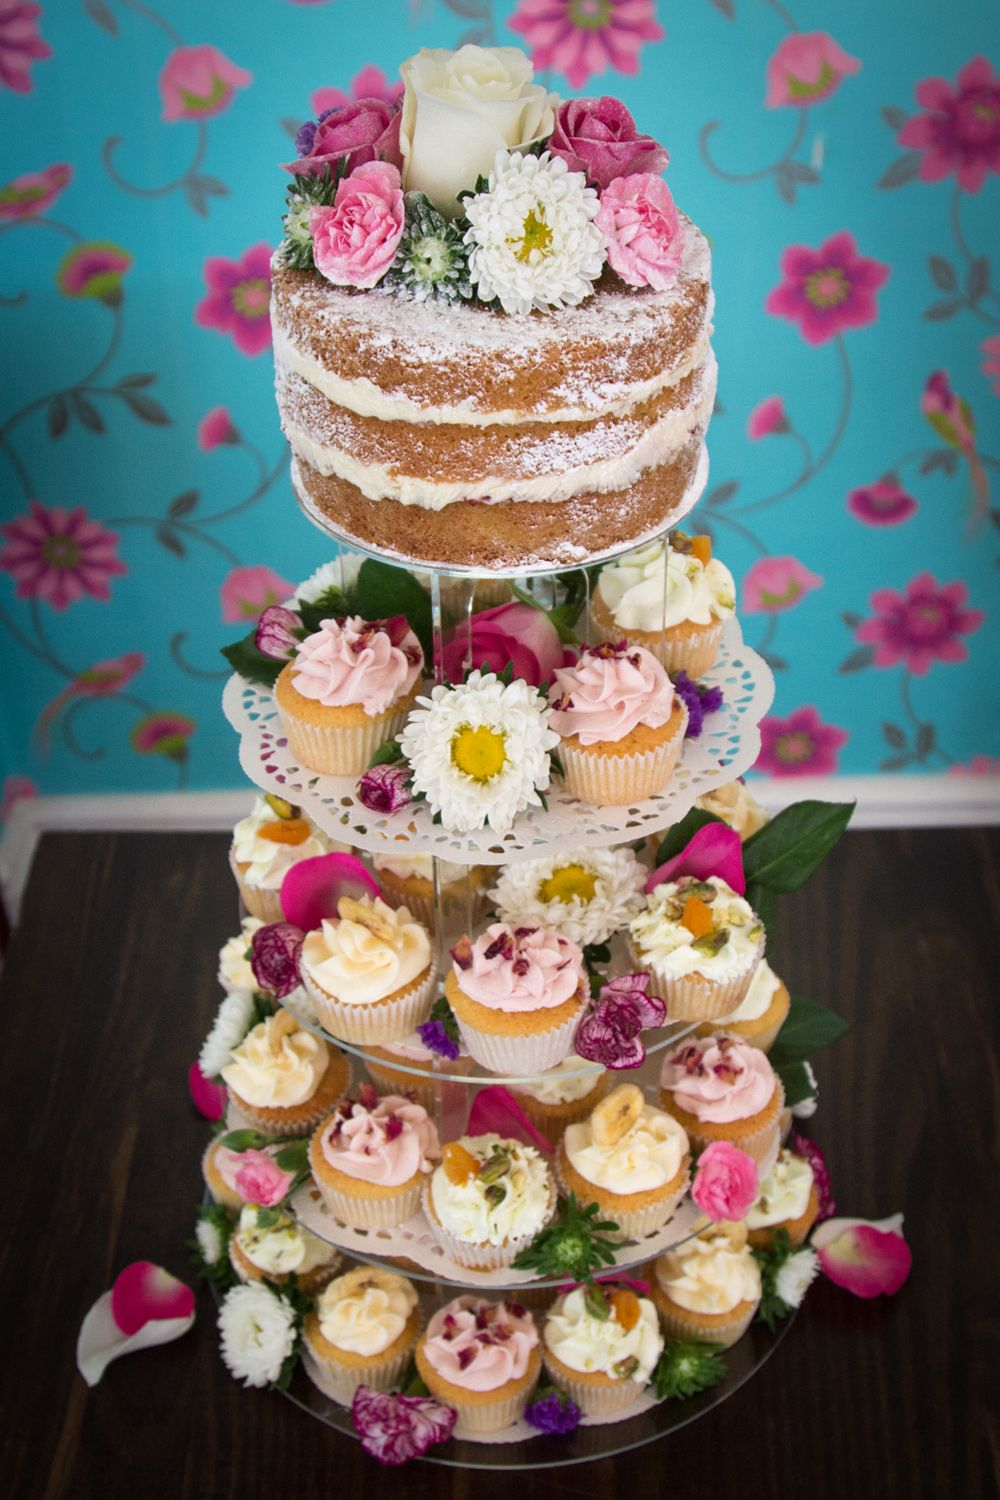 6 Naked Wedding Cake Ideas   Unfrosted and pared-down, naked wedding cakes expose layers of sumptuous sponge   Cupcakes provide an easy and fun alternative to a wedding cake   For more inspiration visit www.weddingsite.co.uk